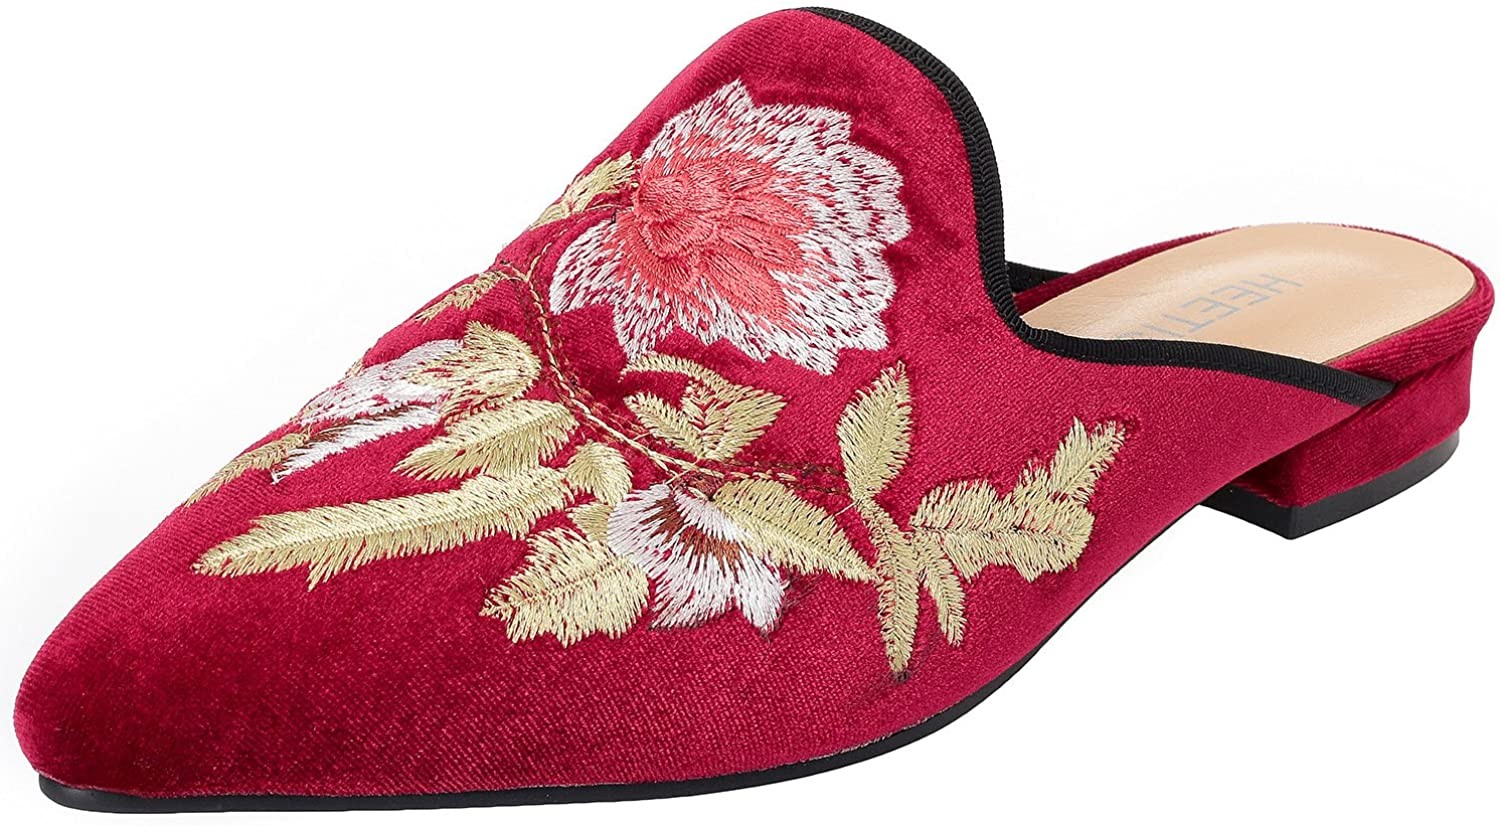 HEETIST Women's Hasiant Velvet Backless Loafer Flat with Flower Embroidery Mule Suede Slippers